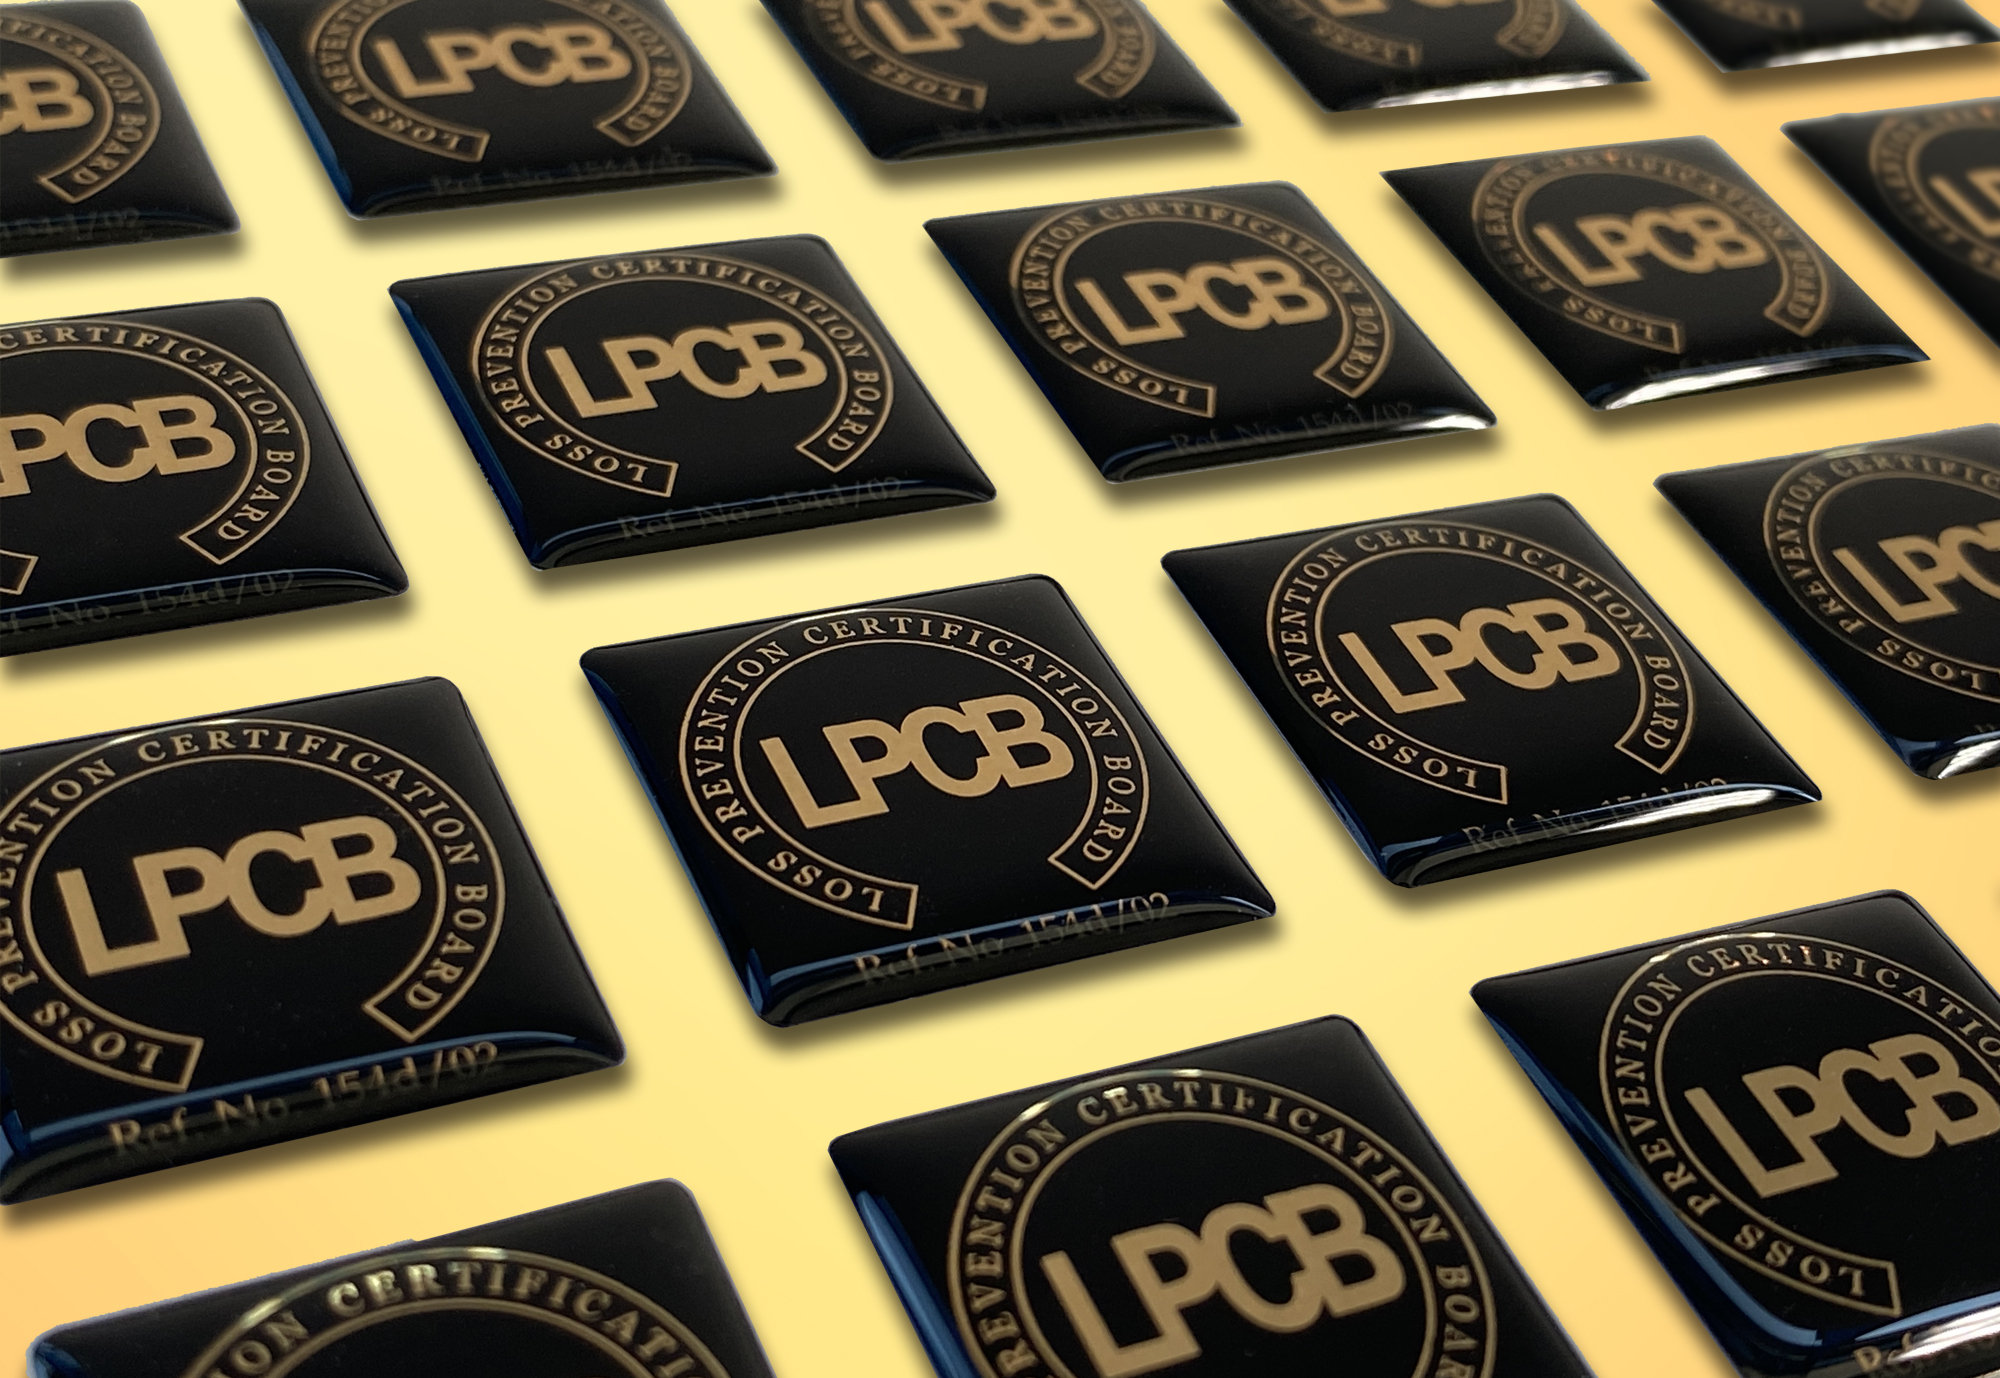 Shhet of Resin Dome stickers - LPCD